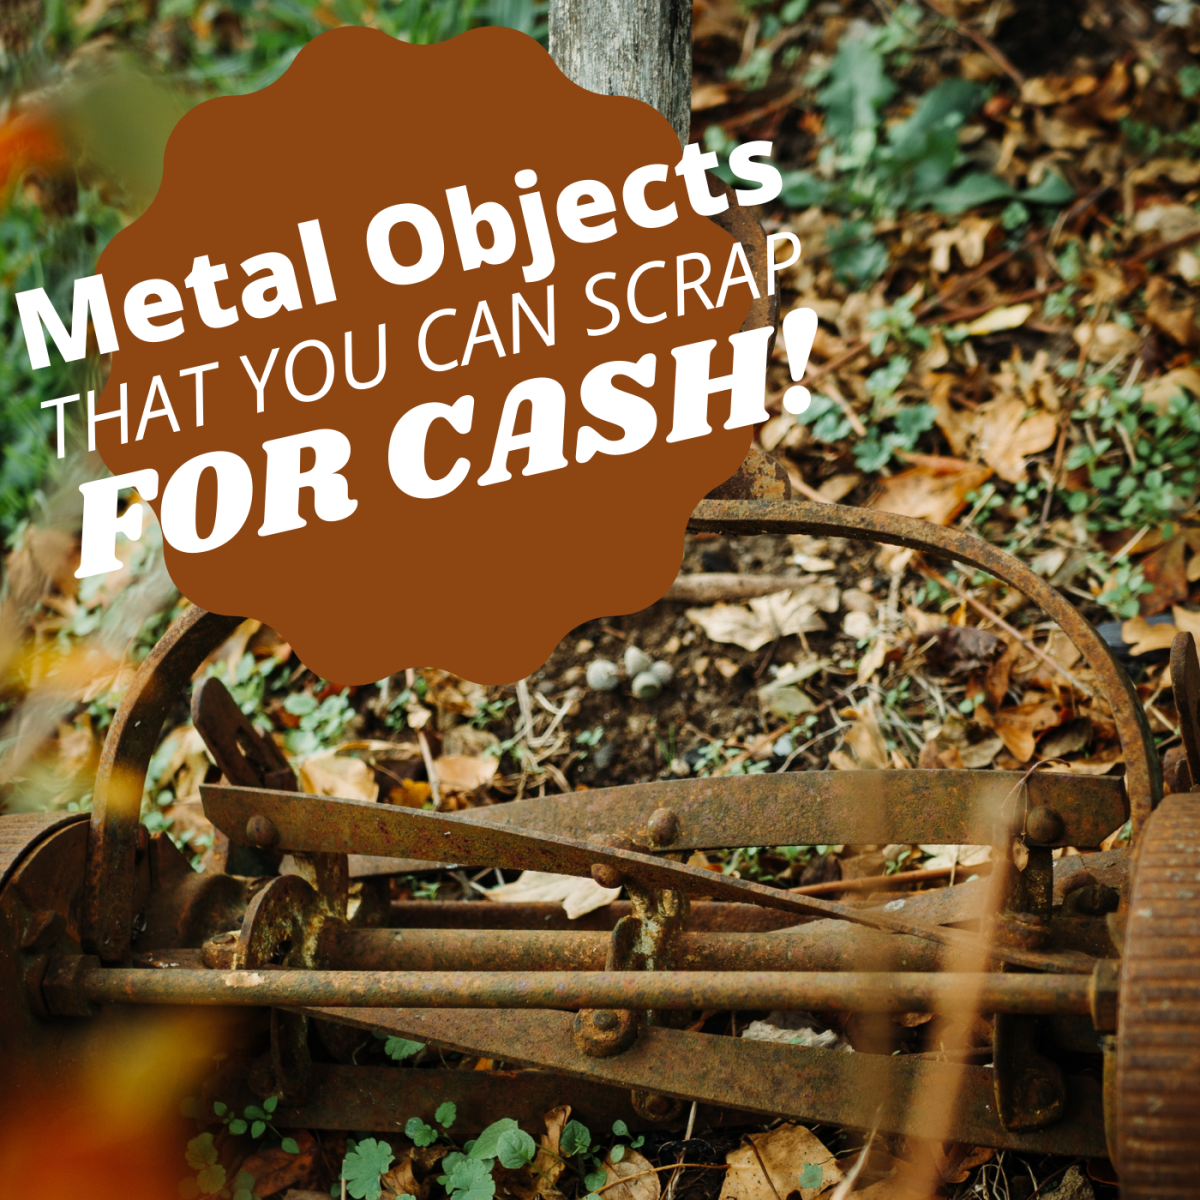 A Few Odd Metal Objects You Can Recycle for Cash